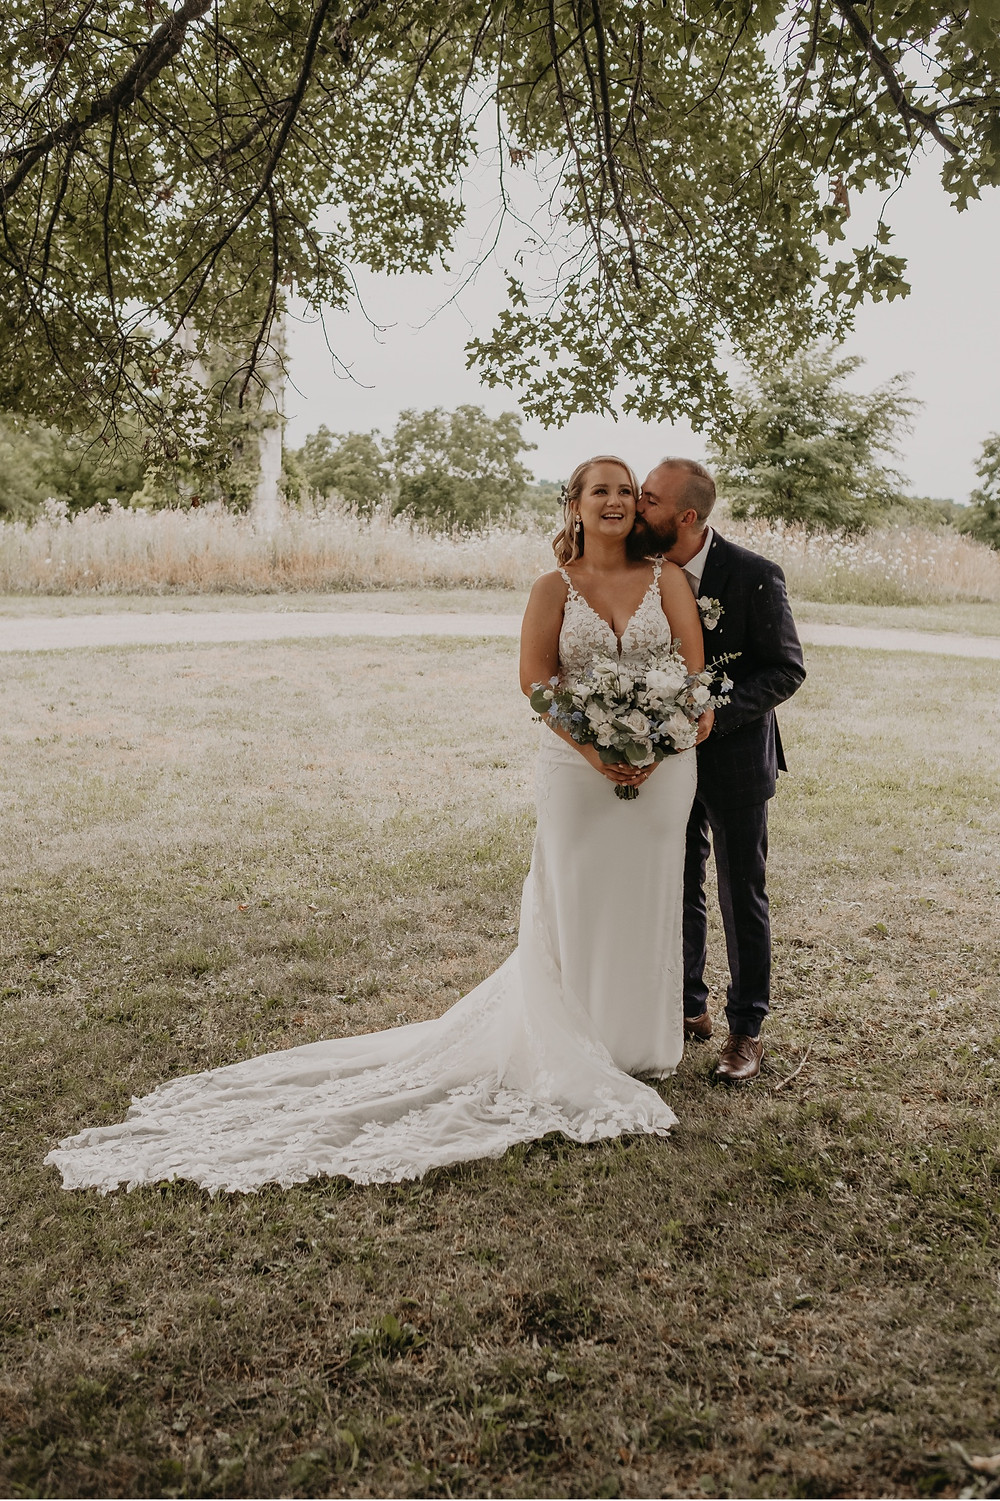 Wedding photos outside in Metro Detroit. Photographed by Nicole Leanne Photography.